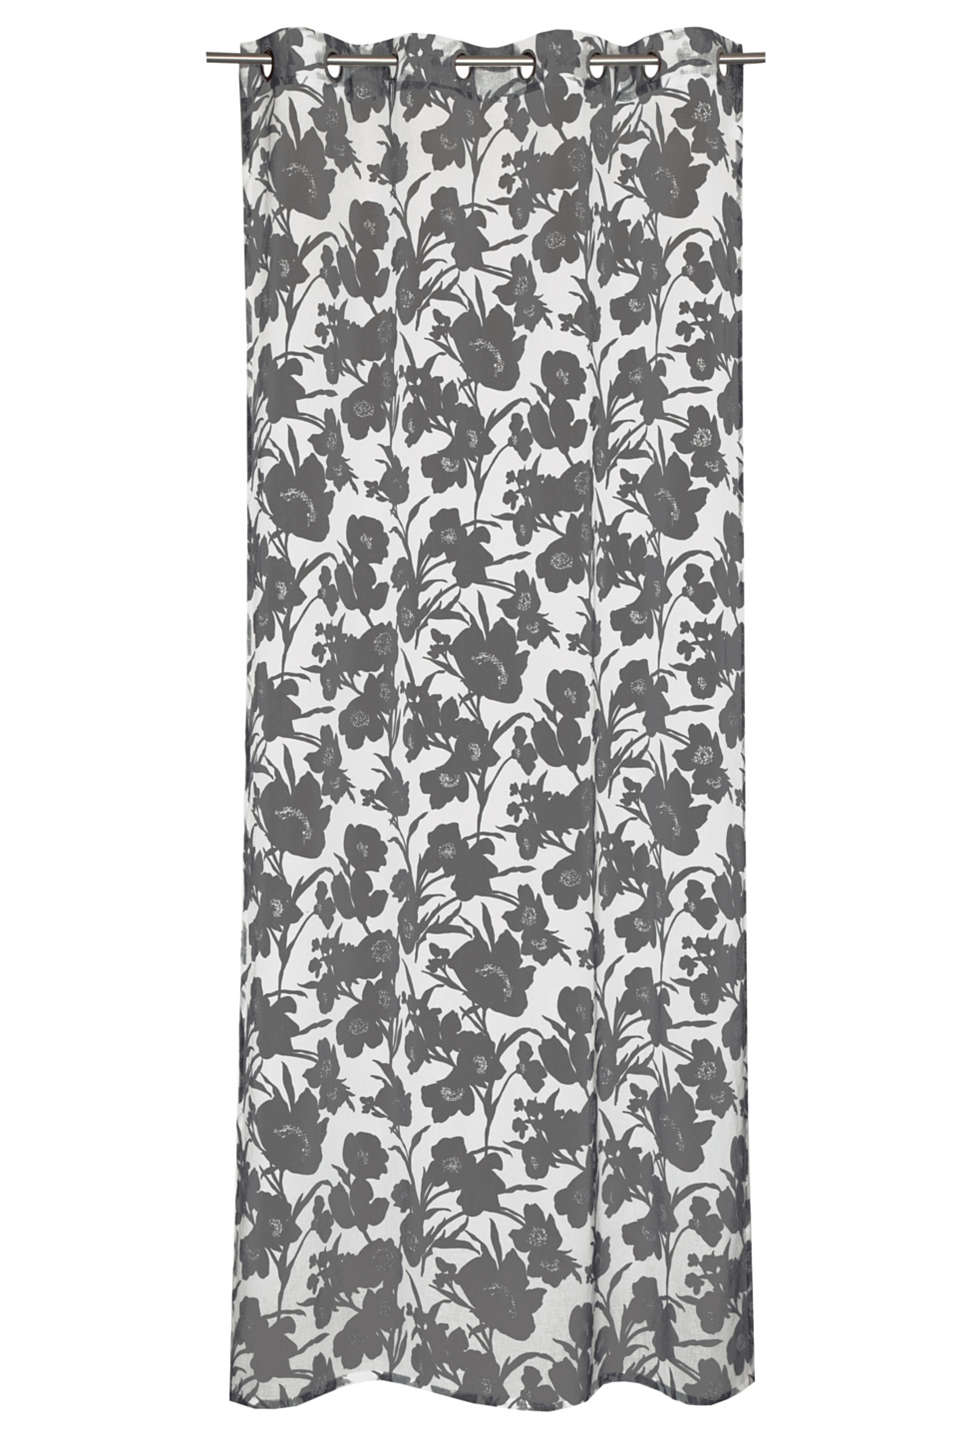 Transparent eyelet curtain with a digital print and modern floral pattern